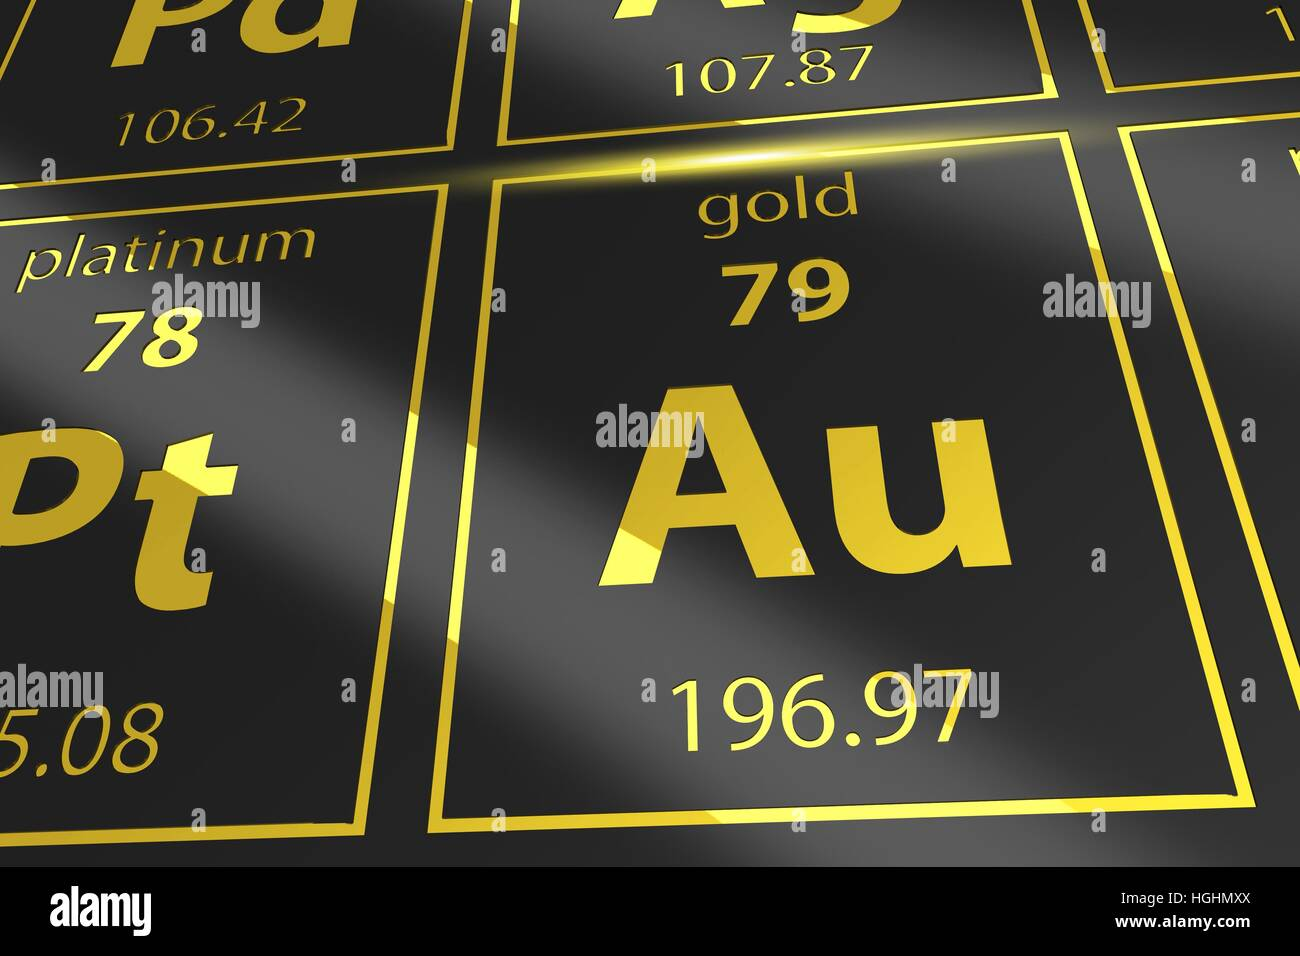 Periodic table golden au mendeleev table closeup on gold stock periodic table golden au mendeleev table closeup on gold urtaz Gallery